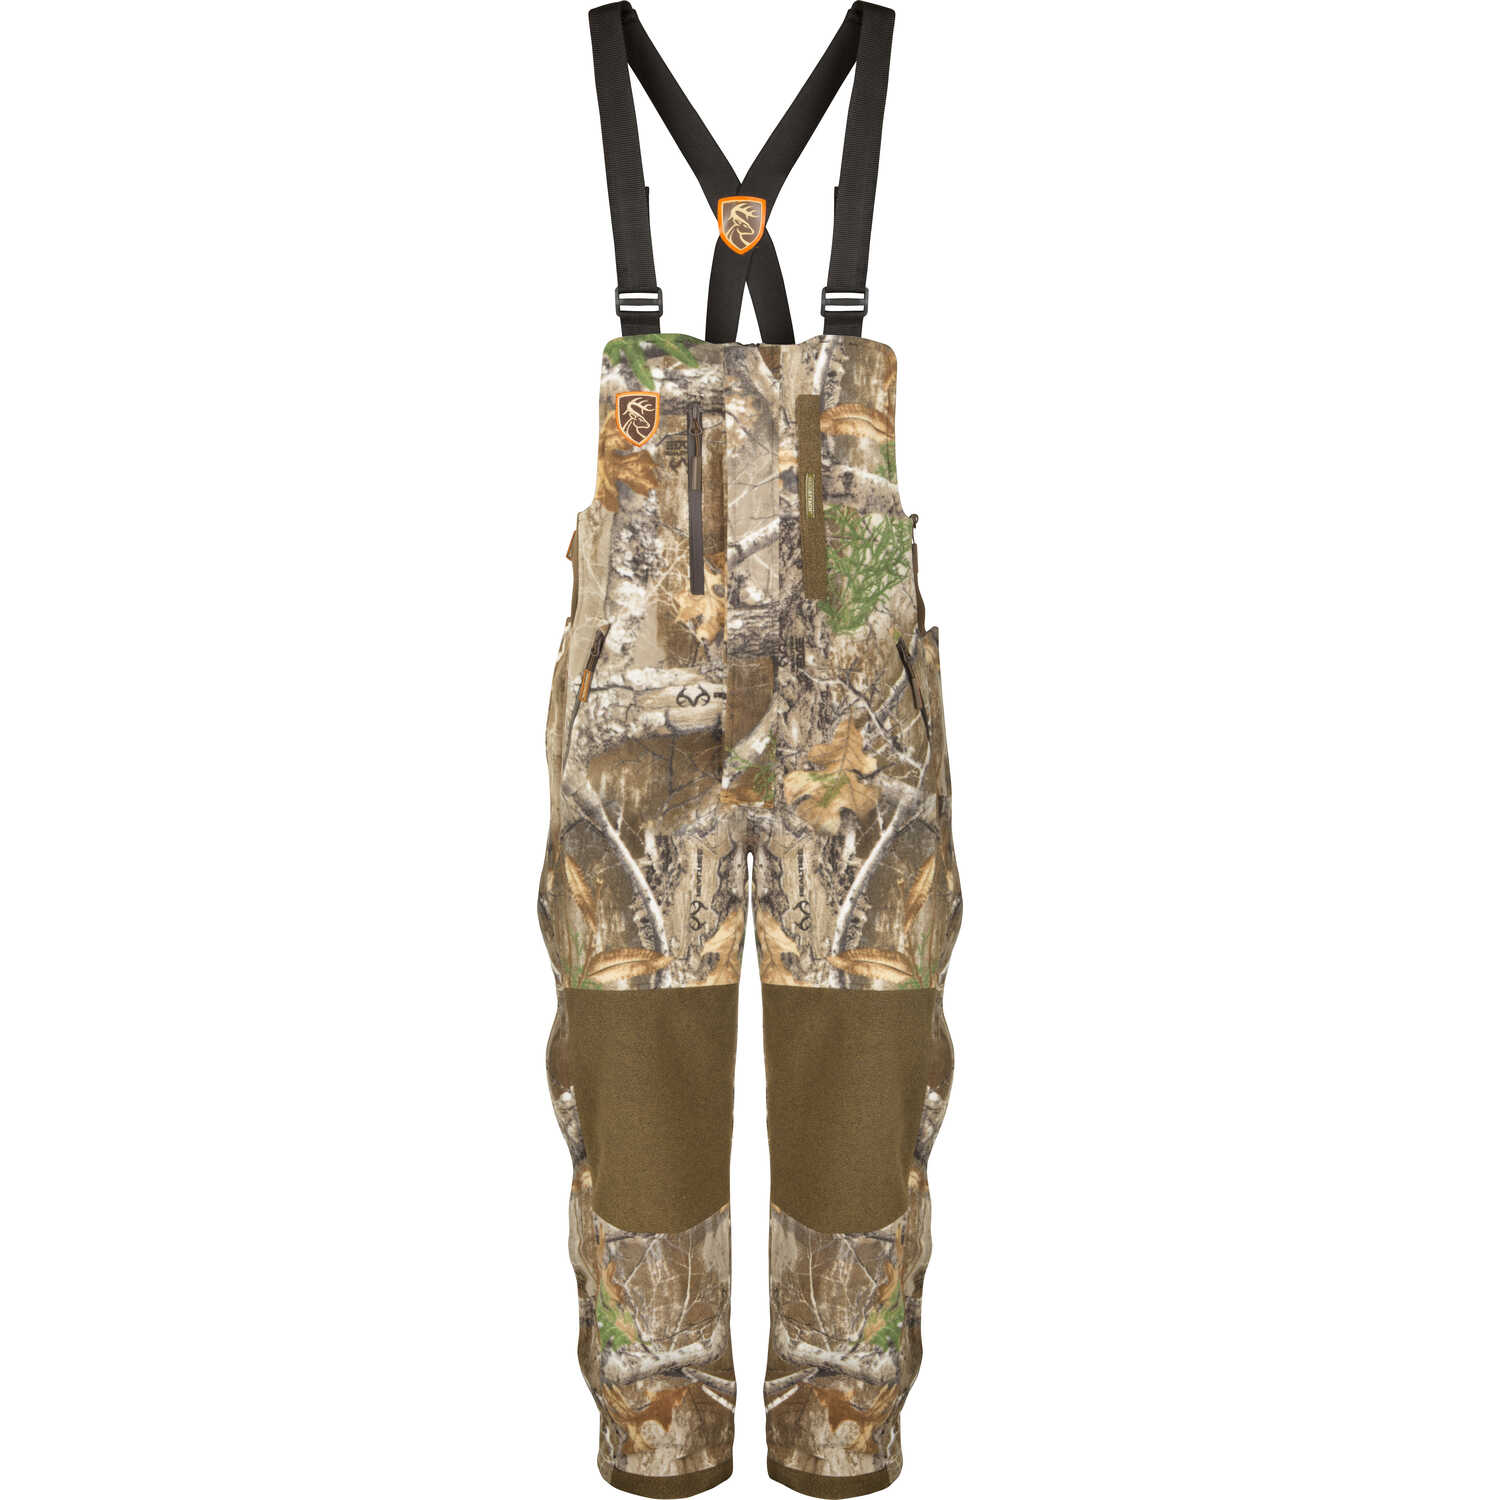 Drake  HydroHush  X-Large  Men's  Sleeveless  Realtree Edge  Hunting Bib